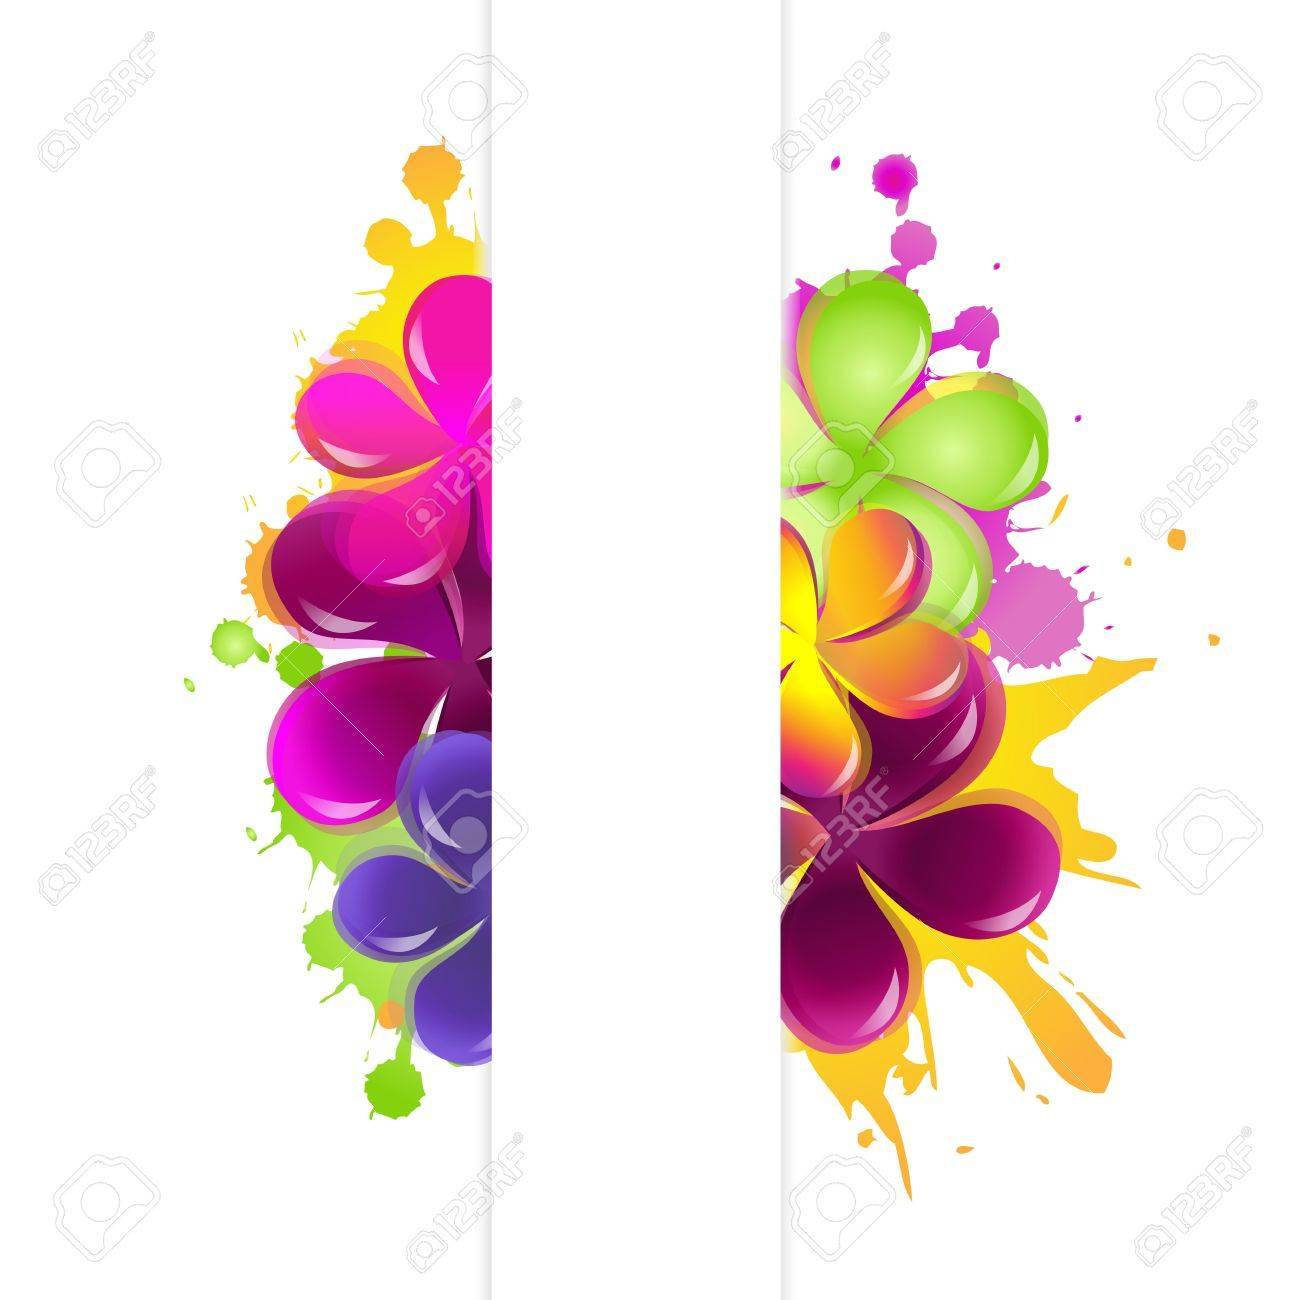 Abstract Flowers, Isolated On White Background. Stock Vector - 10668809